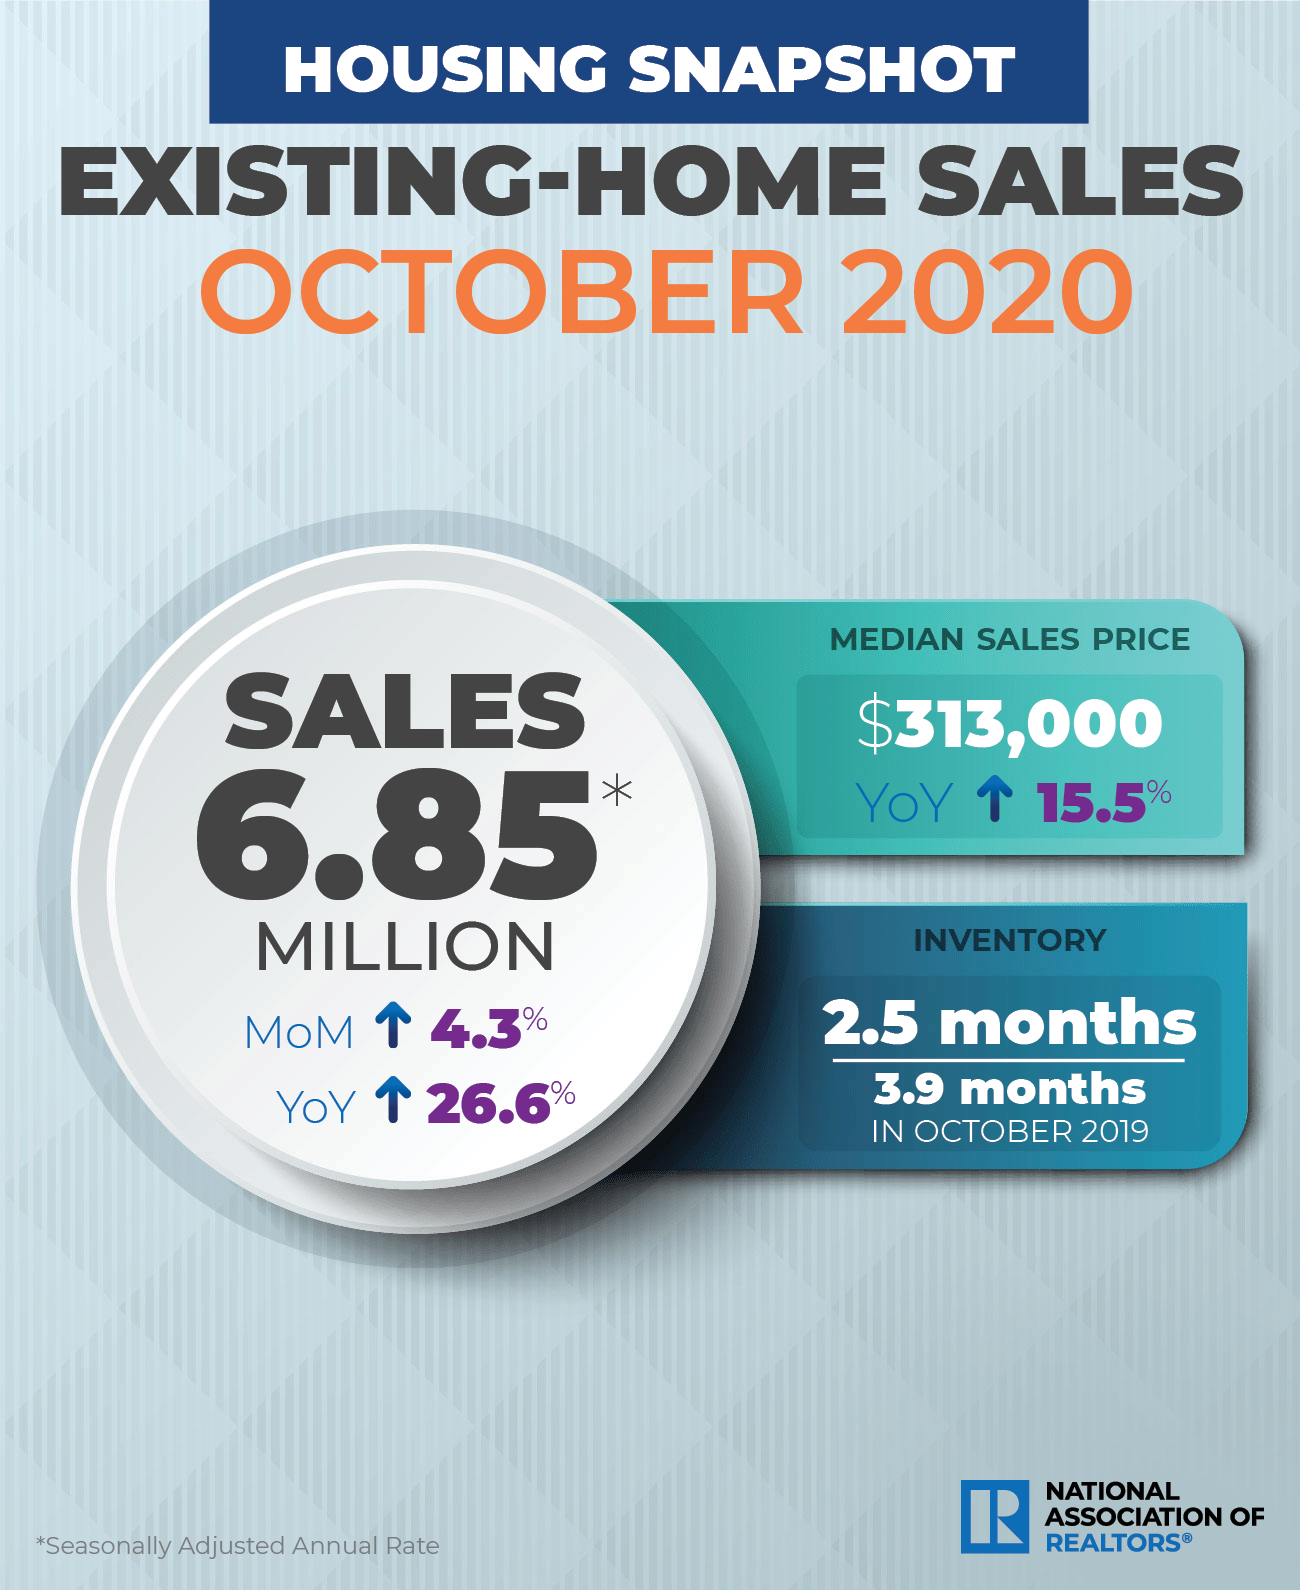 Realtor Magazine 2020 11 21 NAR October 2020 Housing Market Snapshot since the covid plandemic started after going through the Coronavirus Pandemic Hoey Team eXp Realty